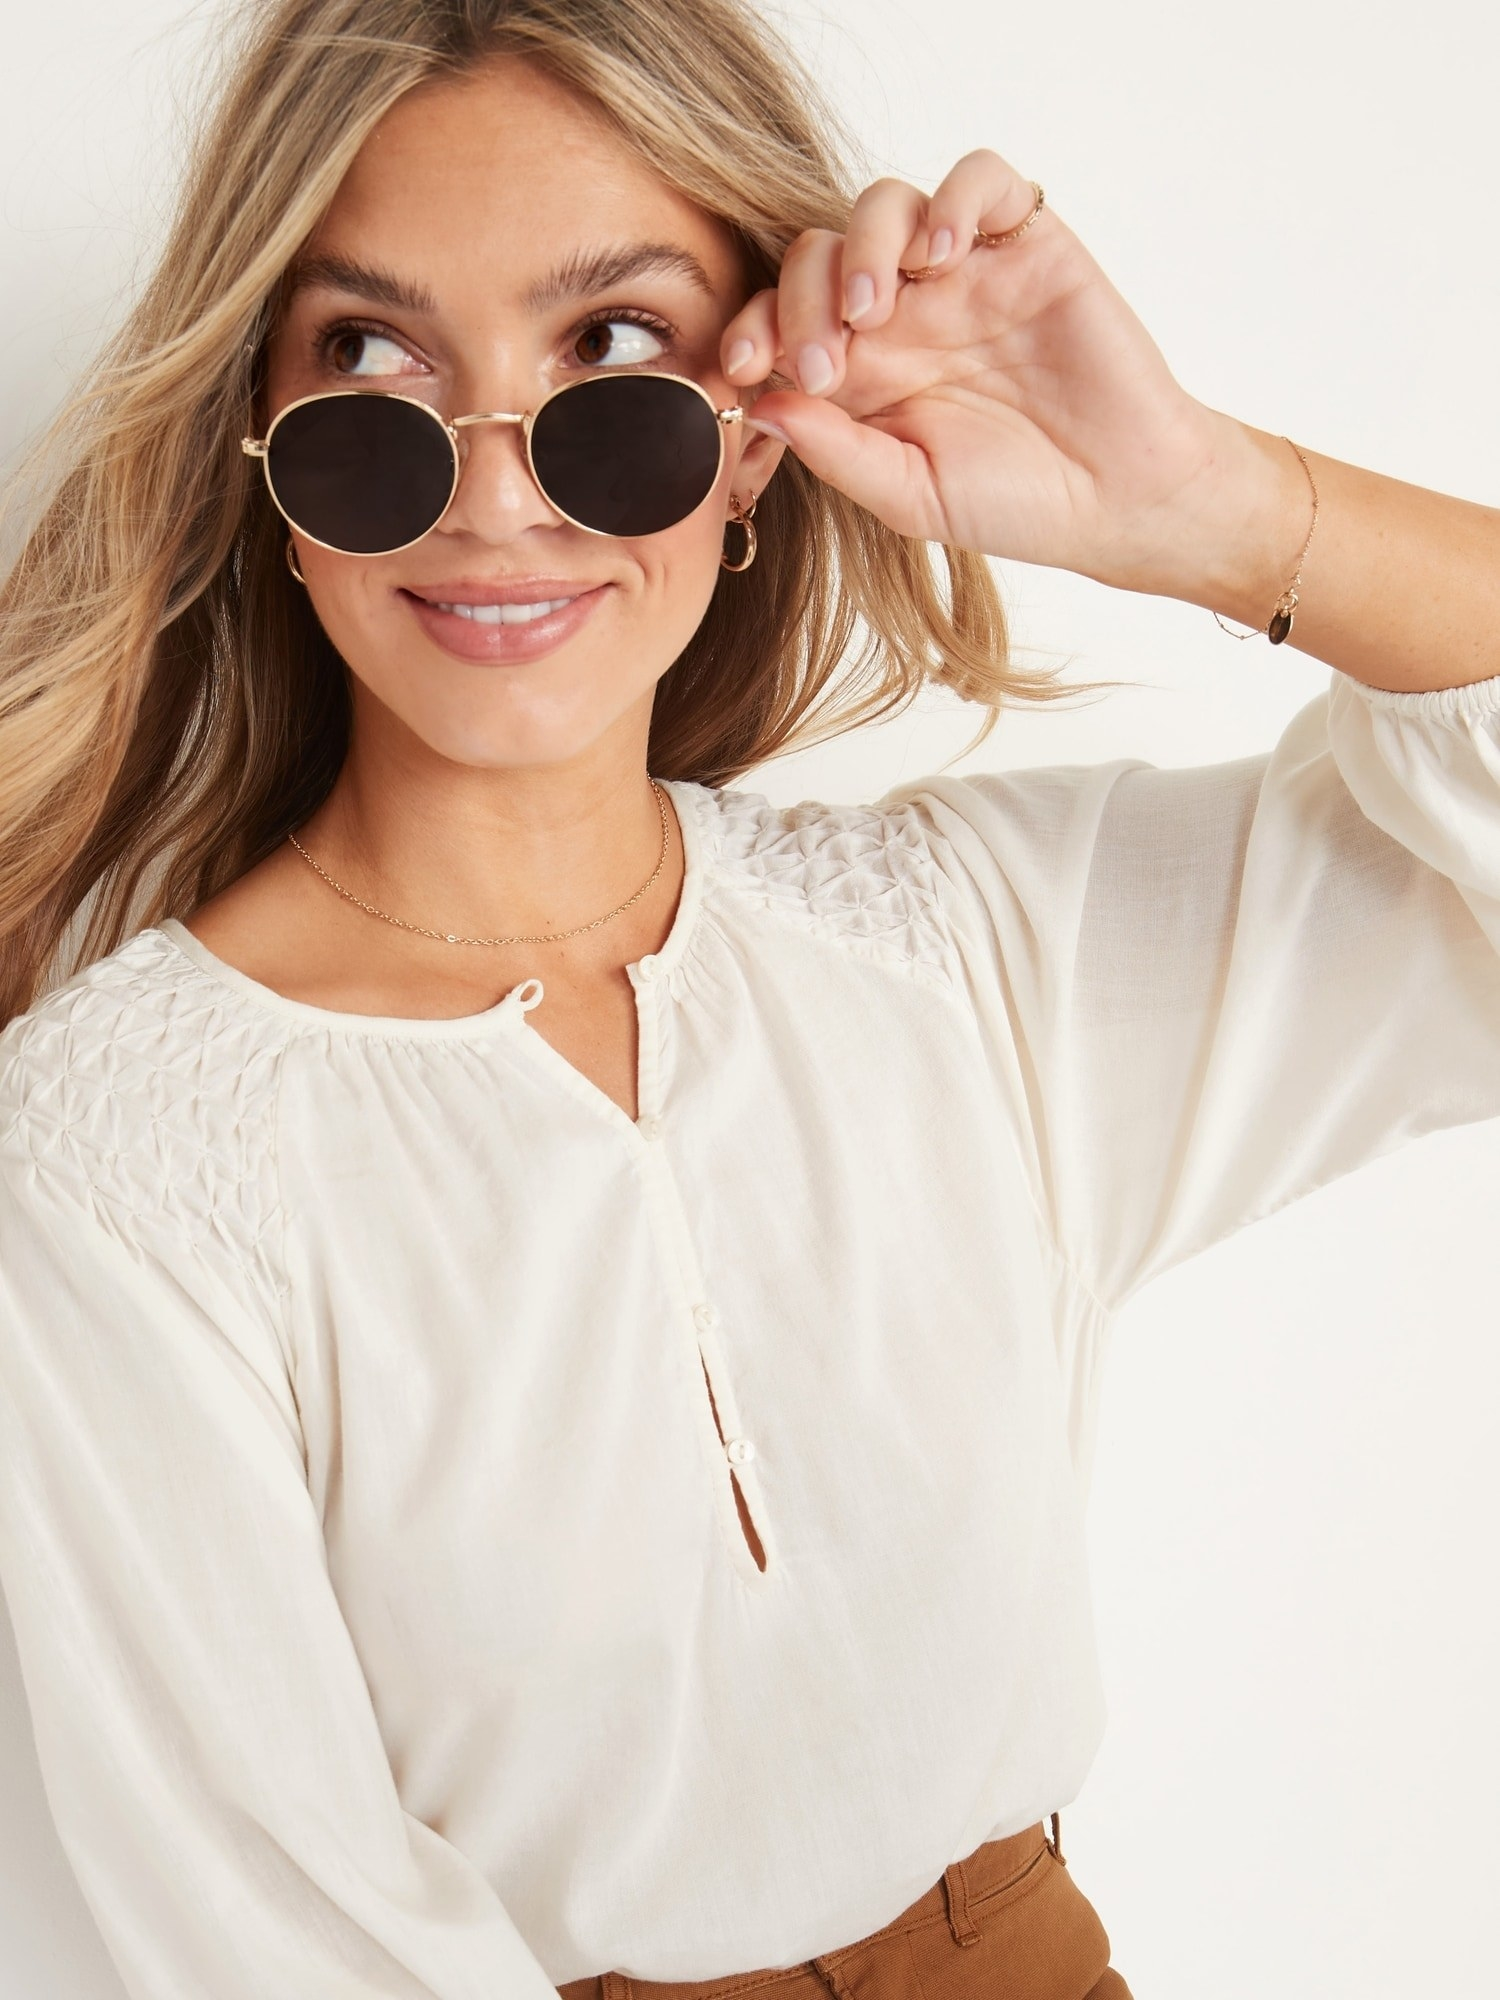 a person wearing the half-button up blouse while wearing a pair of sunglasses